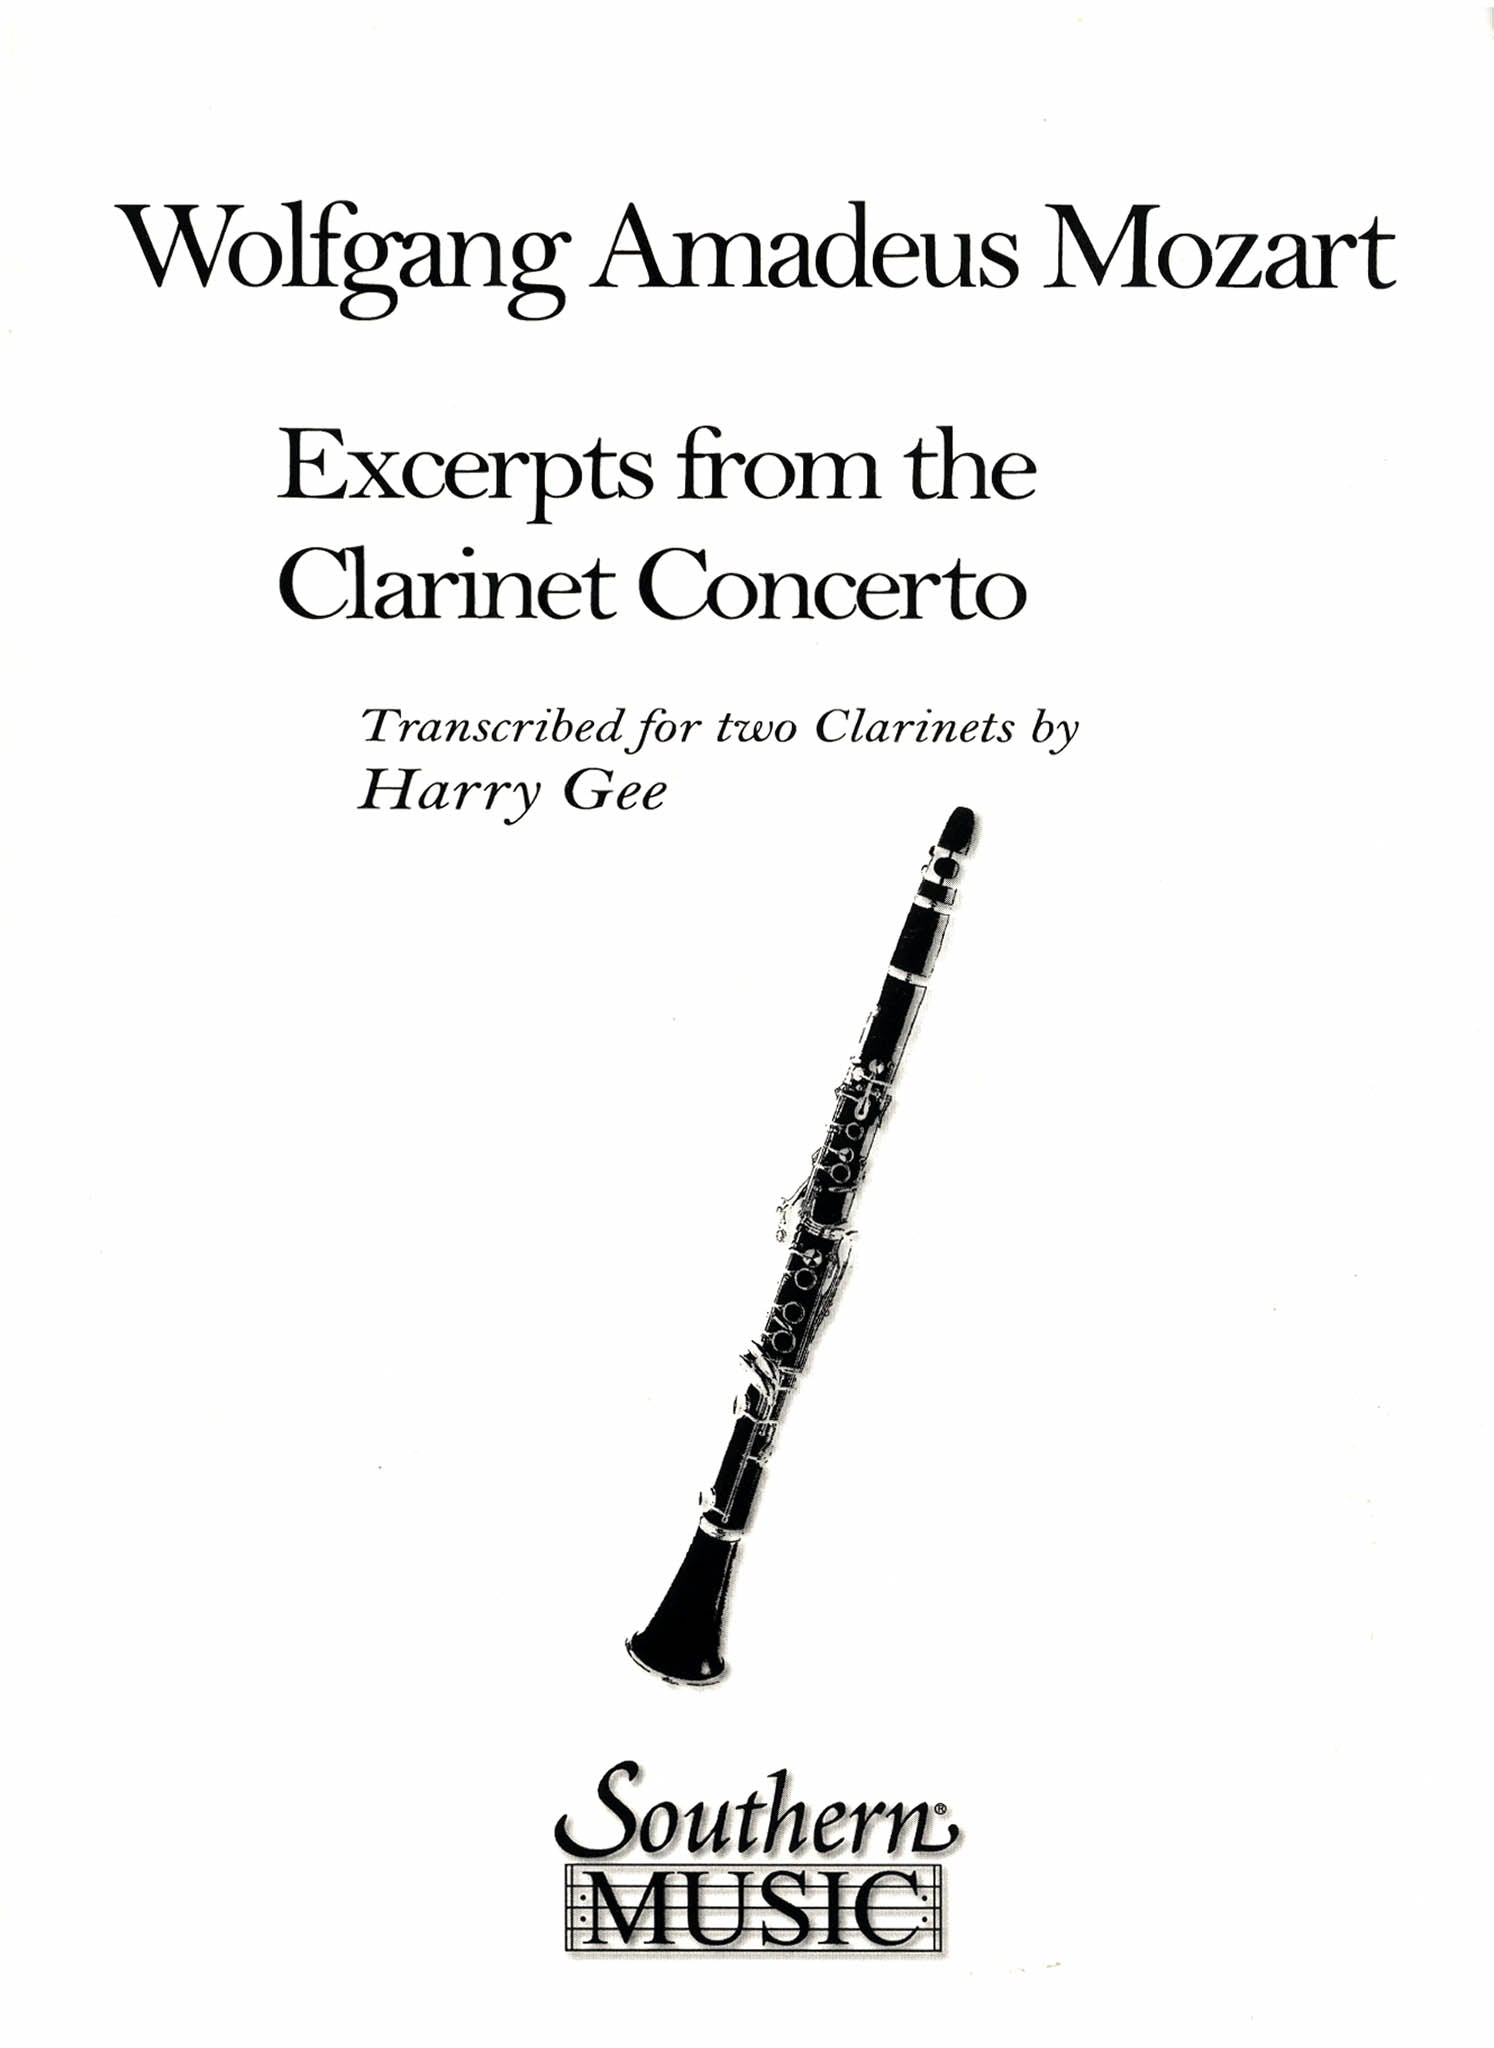 Clarinet Concerto in A Major, K. 622 for 2 Clarinets Cover